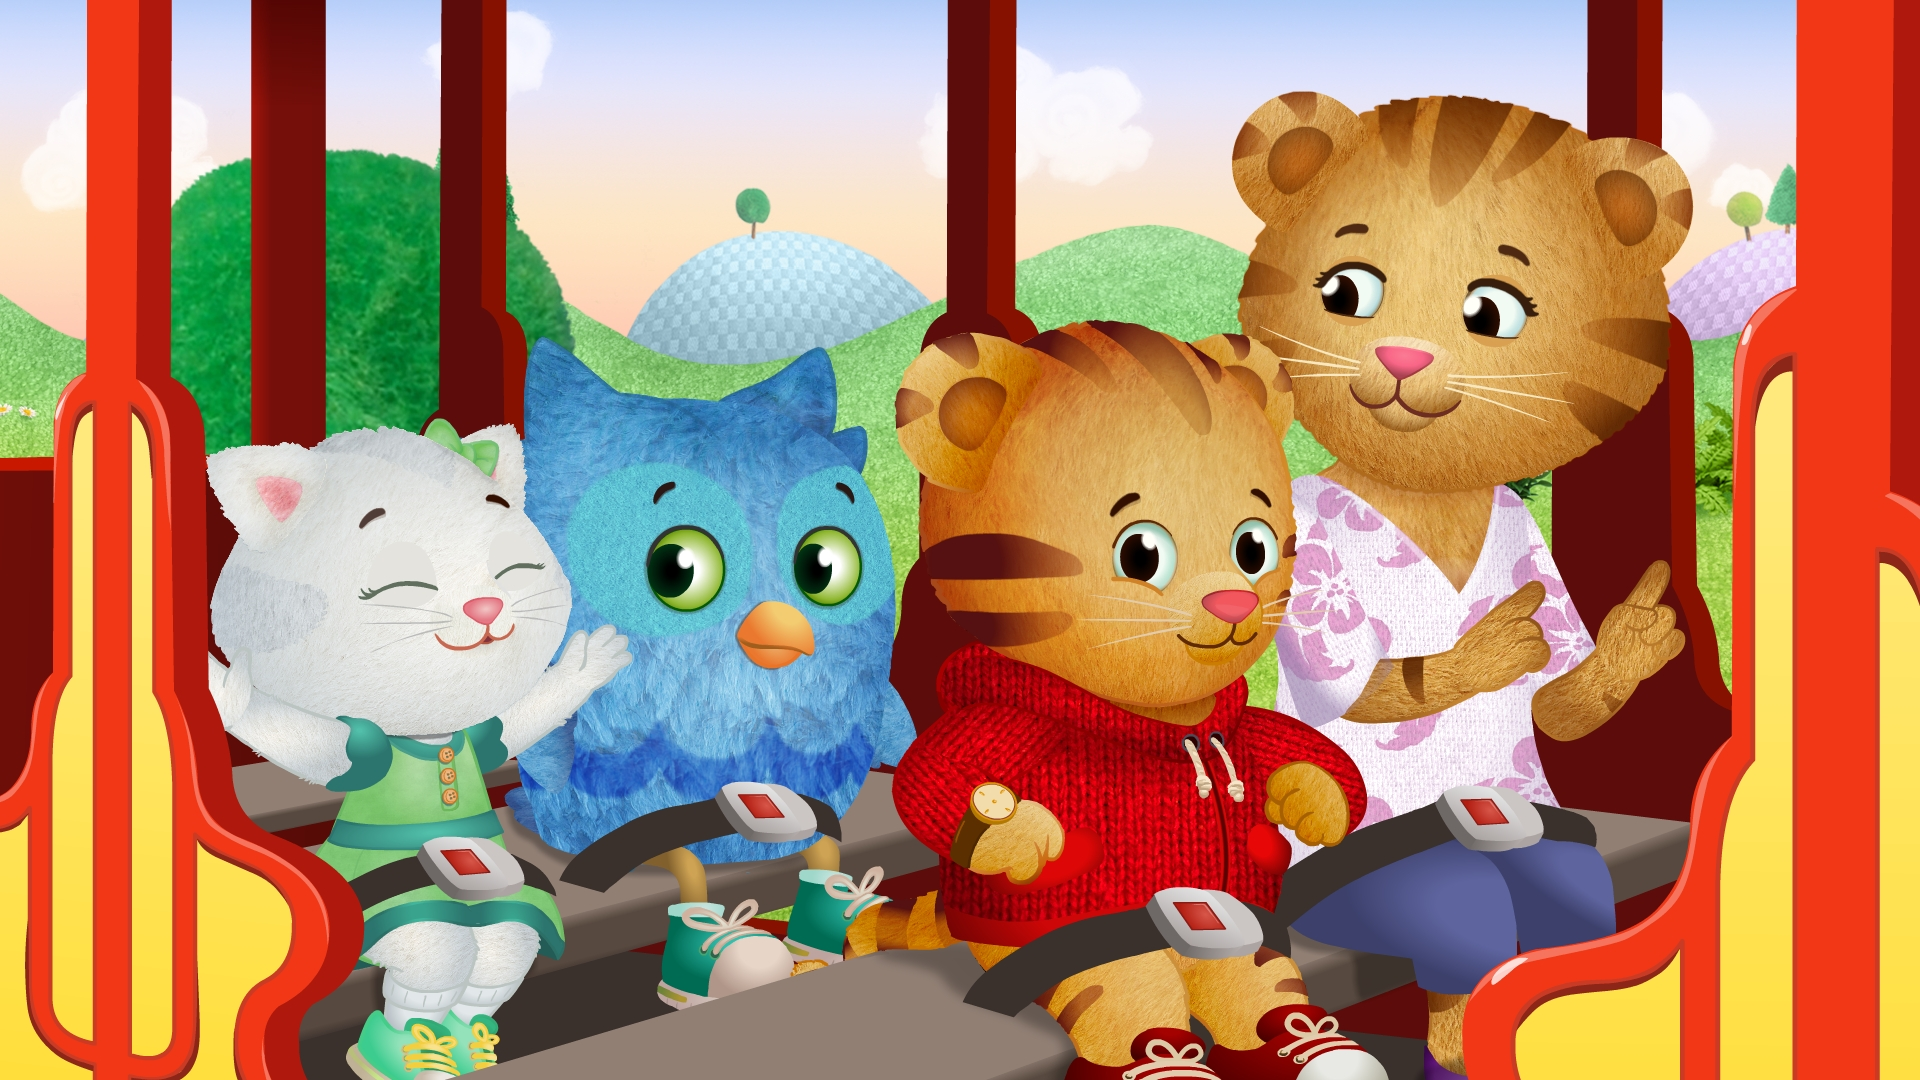 Press Release 9 Story Producing Daniel Tiger S Neighborhood Based On The Characters From Mr Rogers Neighborhood Cartoon North